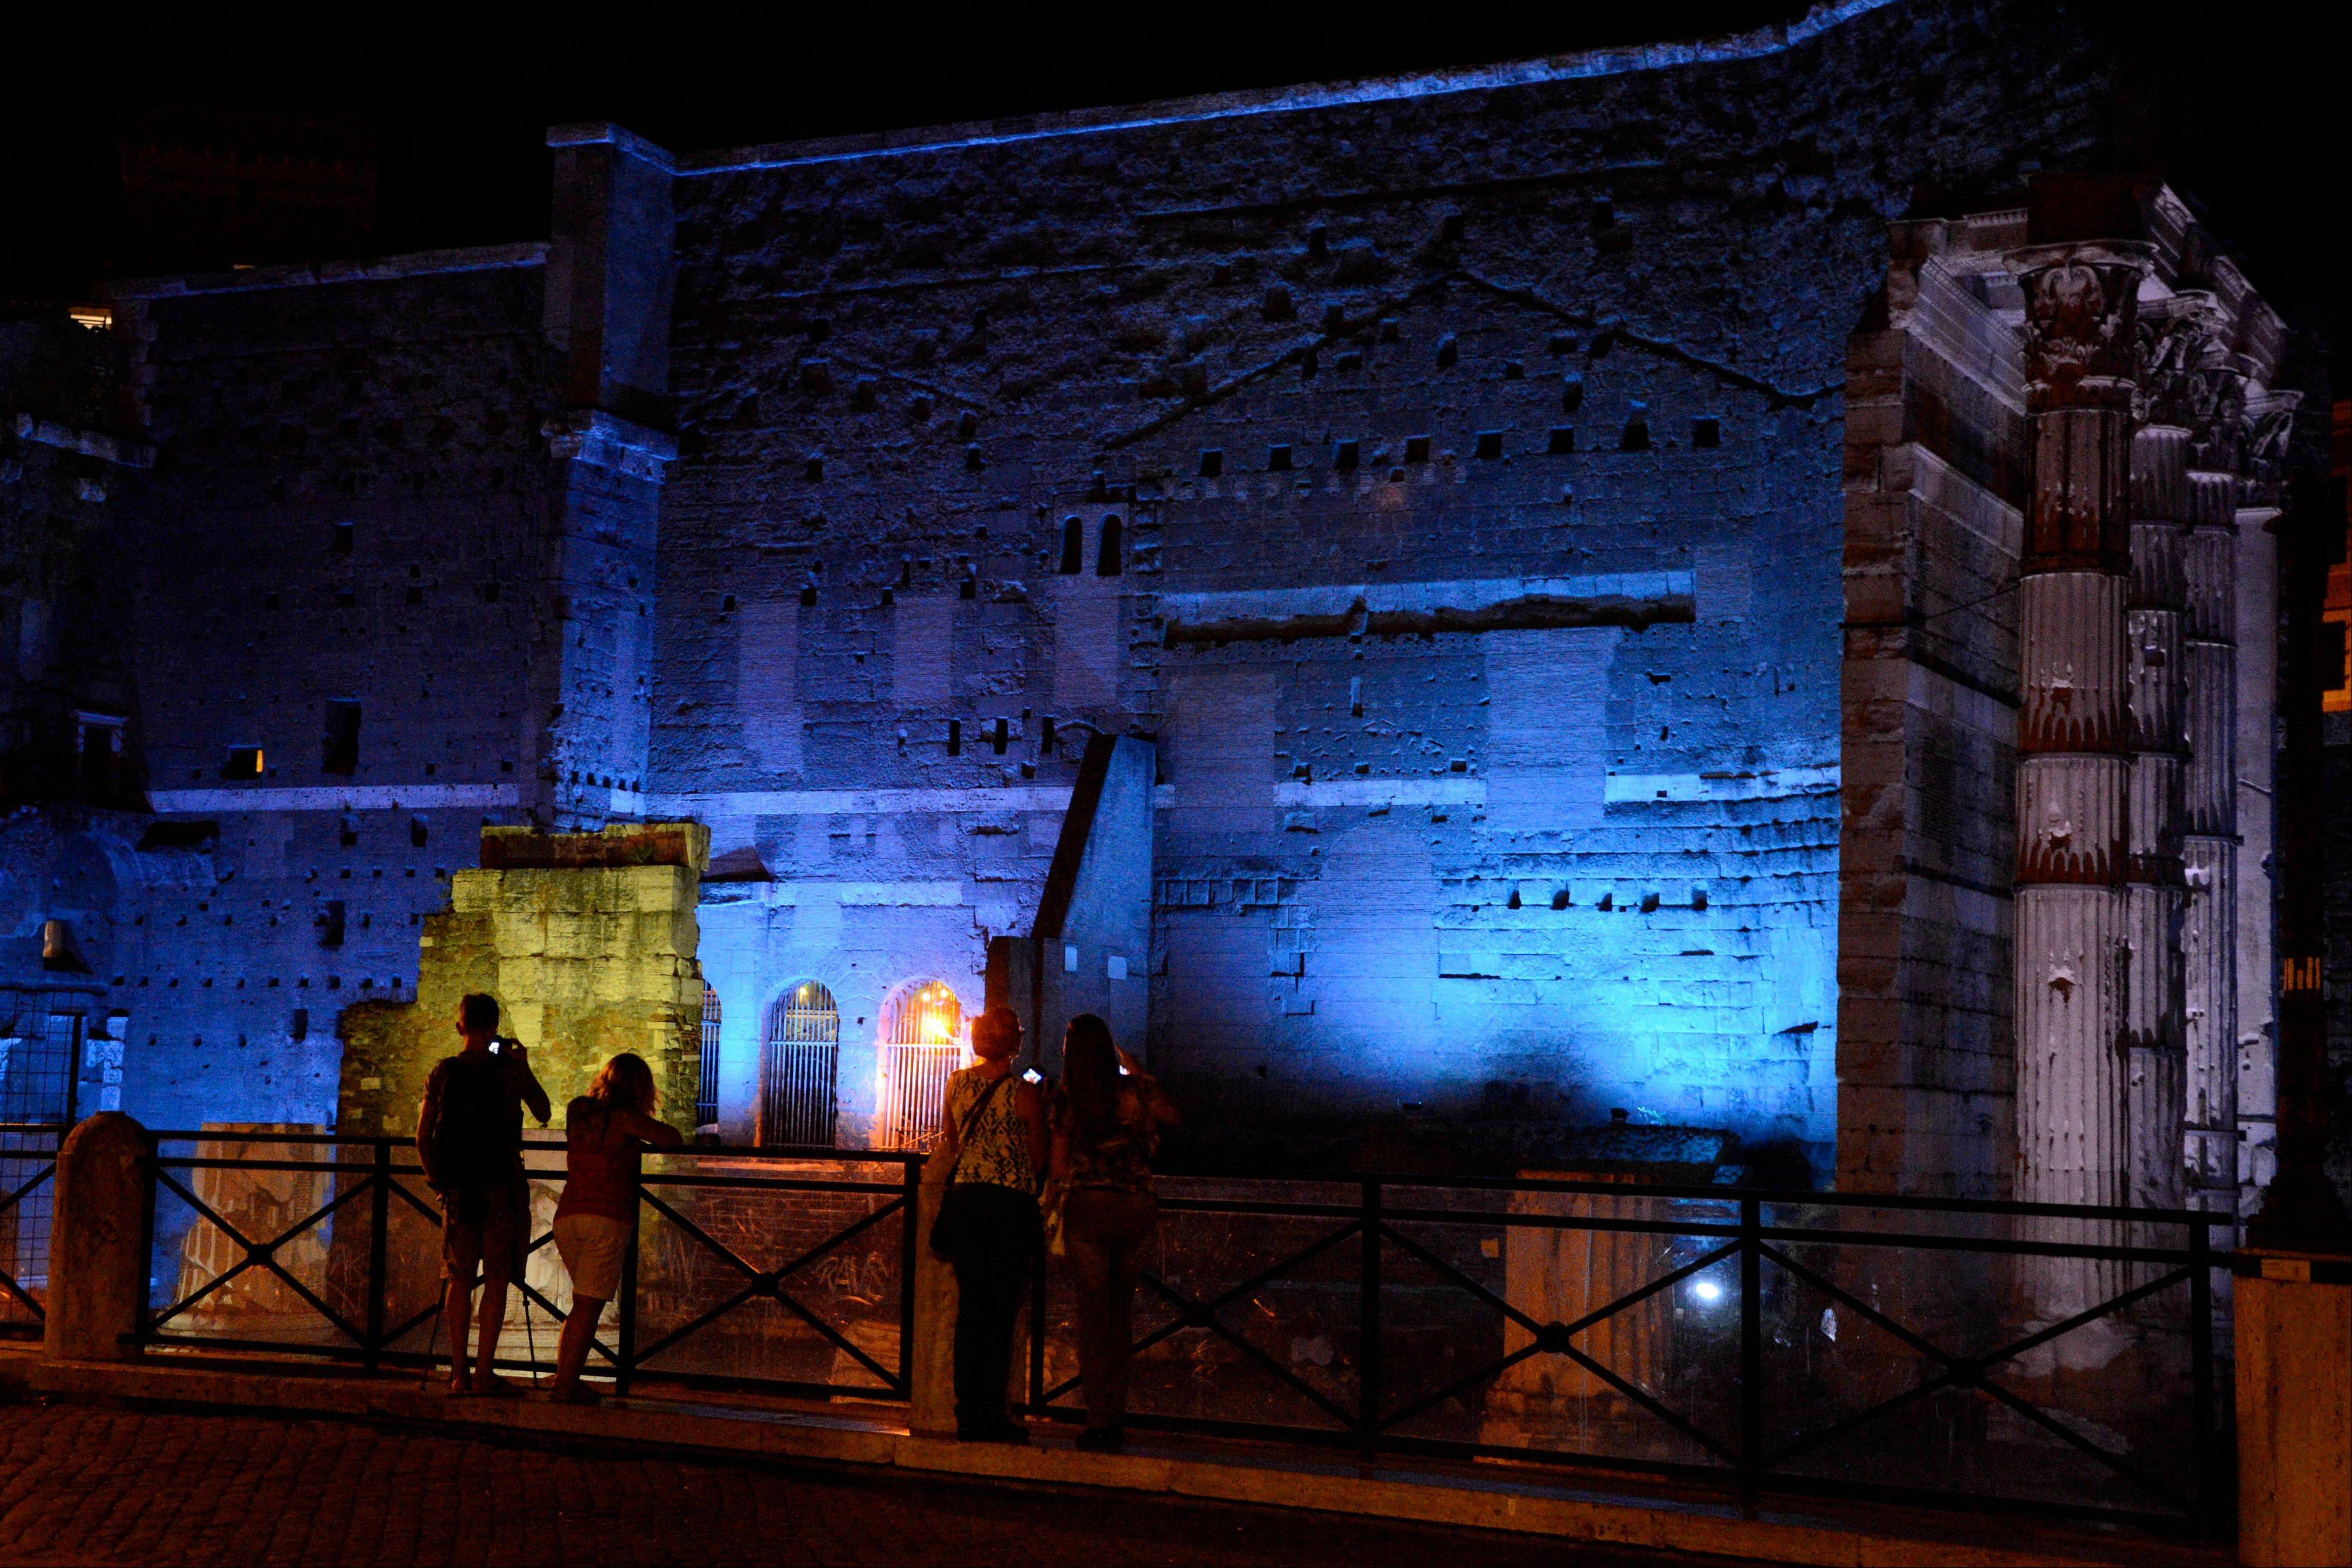 At night, the Roman Forums are transformed into a romantic spot with white, blue and green beams of light coloring the ruins.